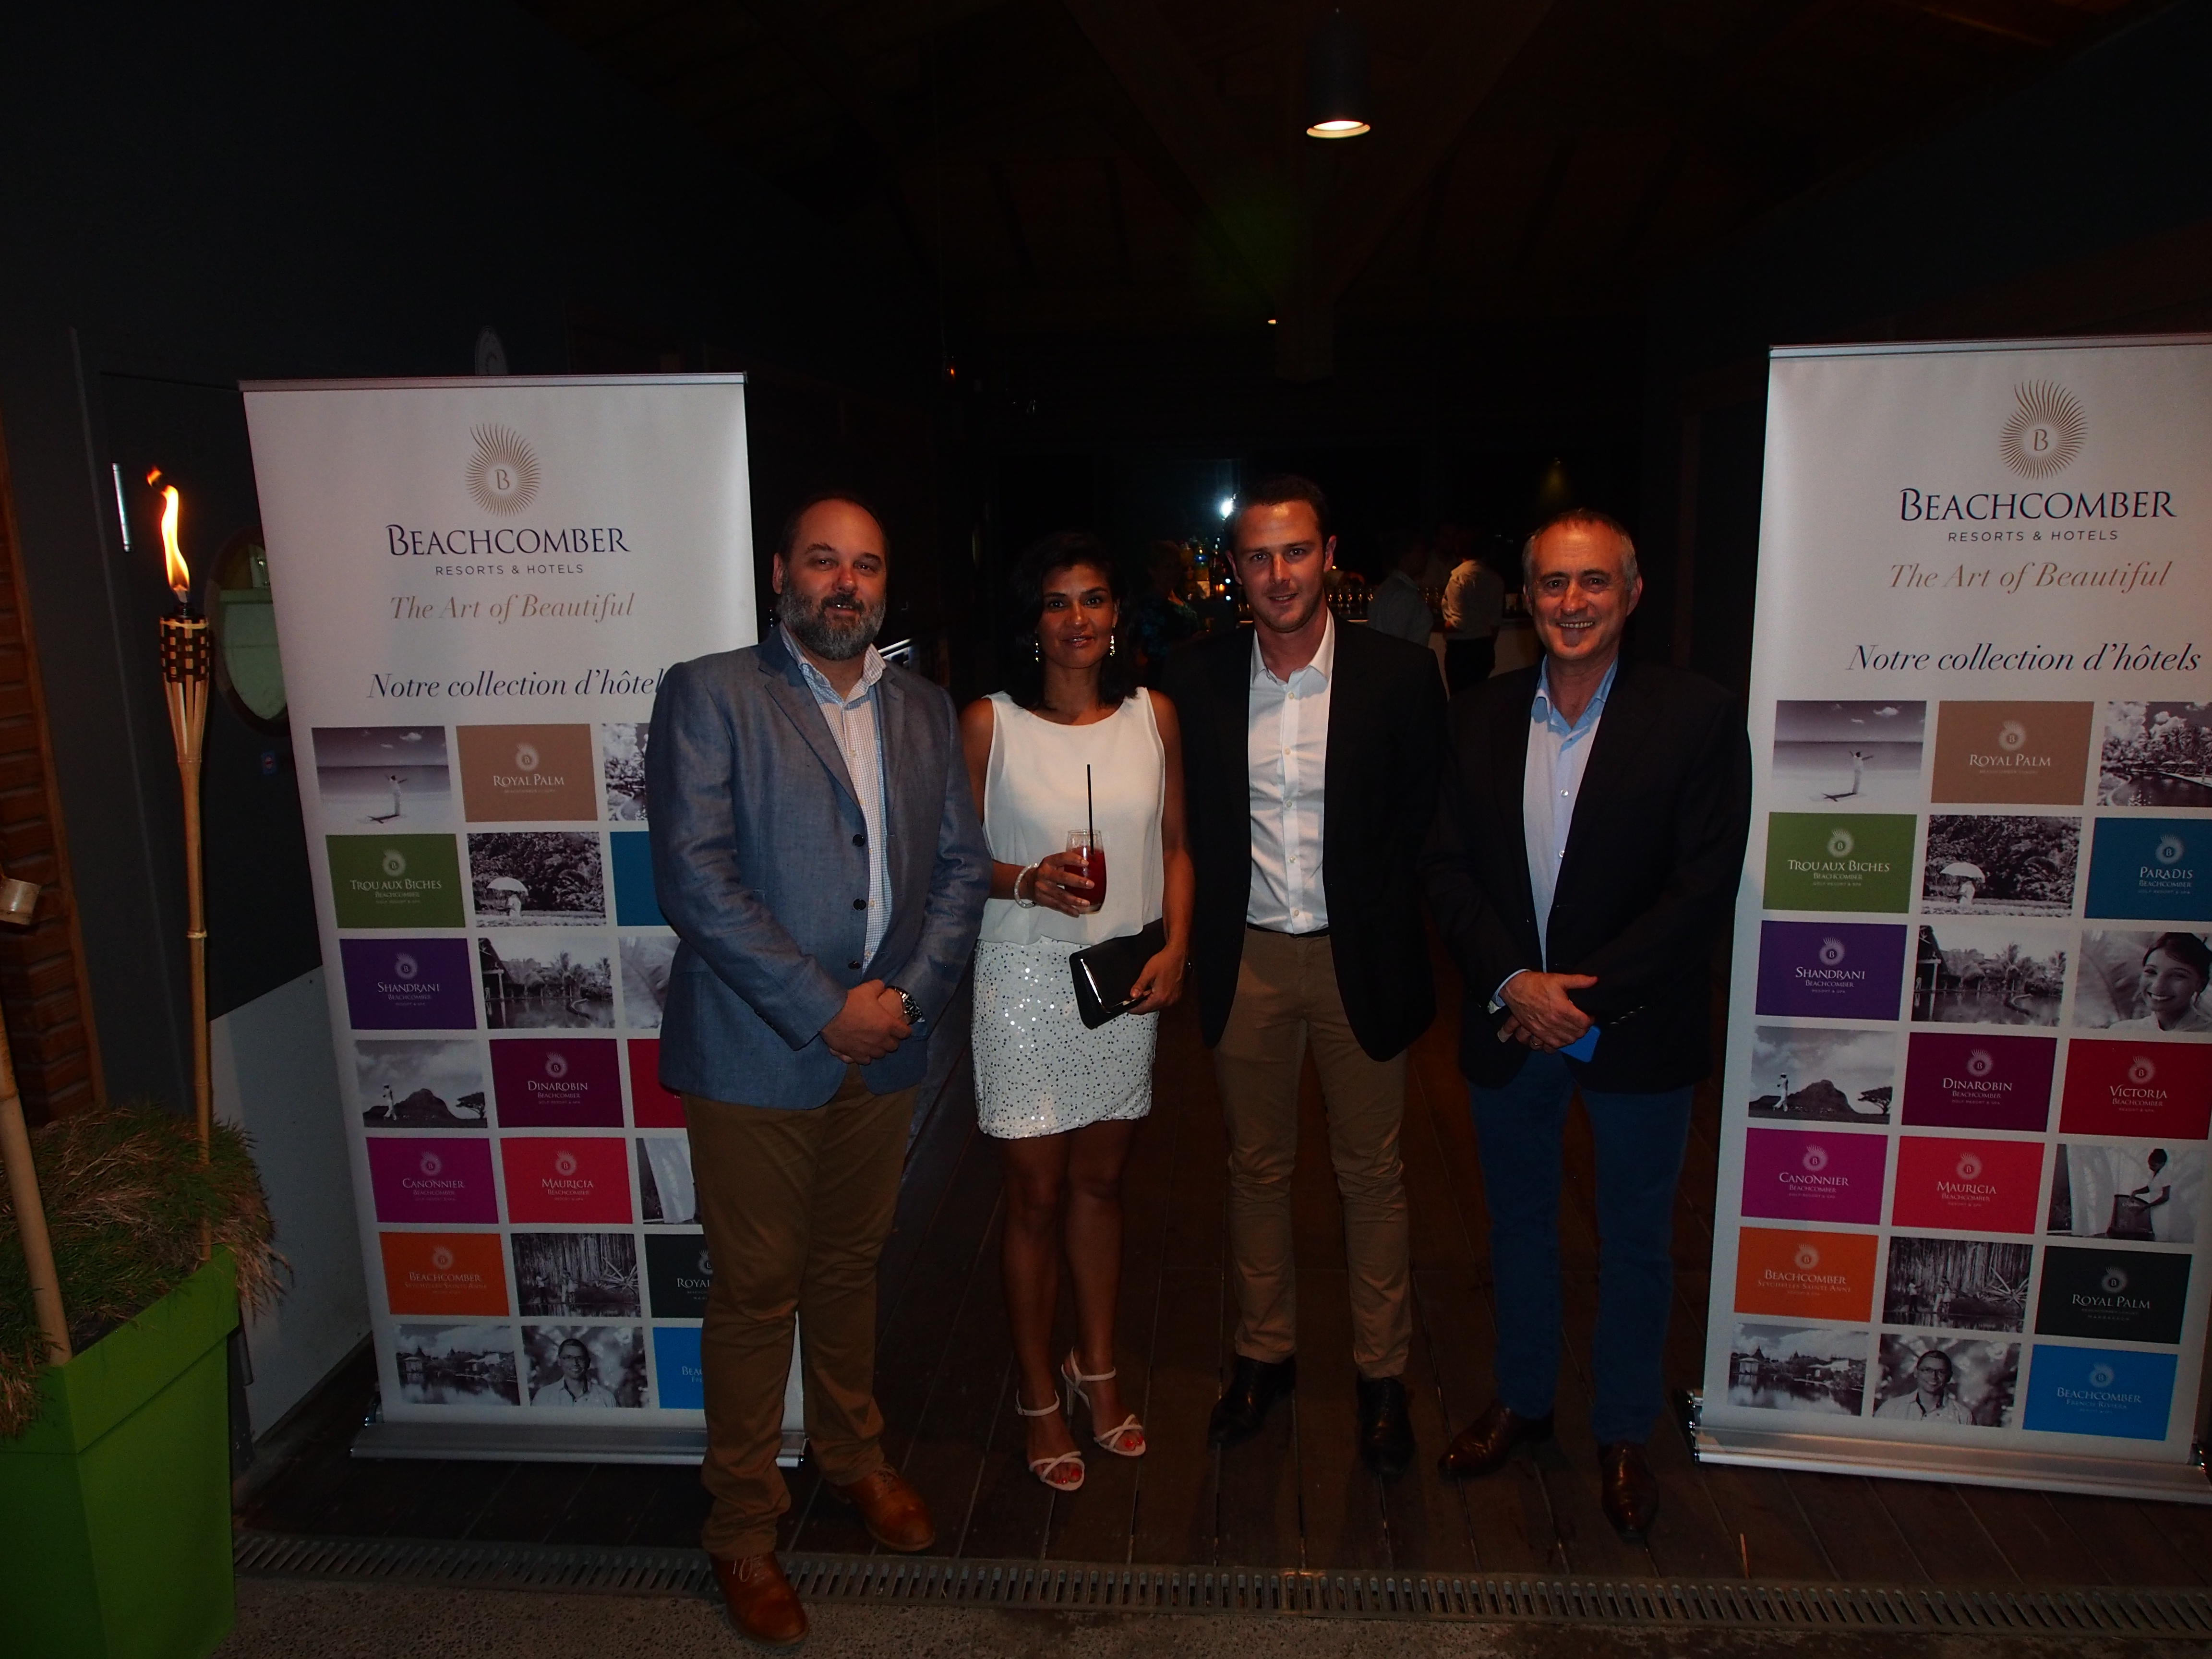 Nicolas Staub (group head of sales) Arianne Devienne-Bellepeau (leisure; events manager) Olivier Rougier Lagane (sales manager) François Venin (chief sales & marketing officer)